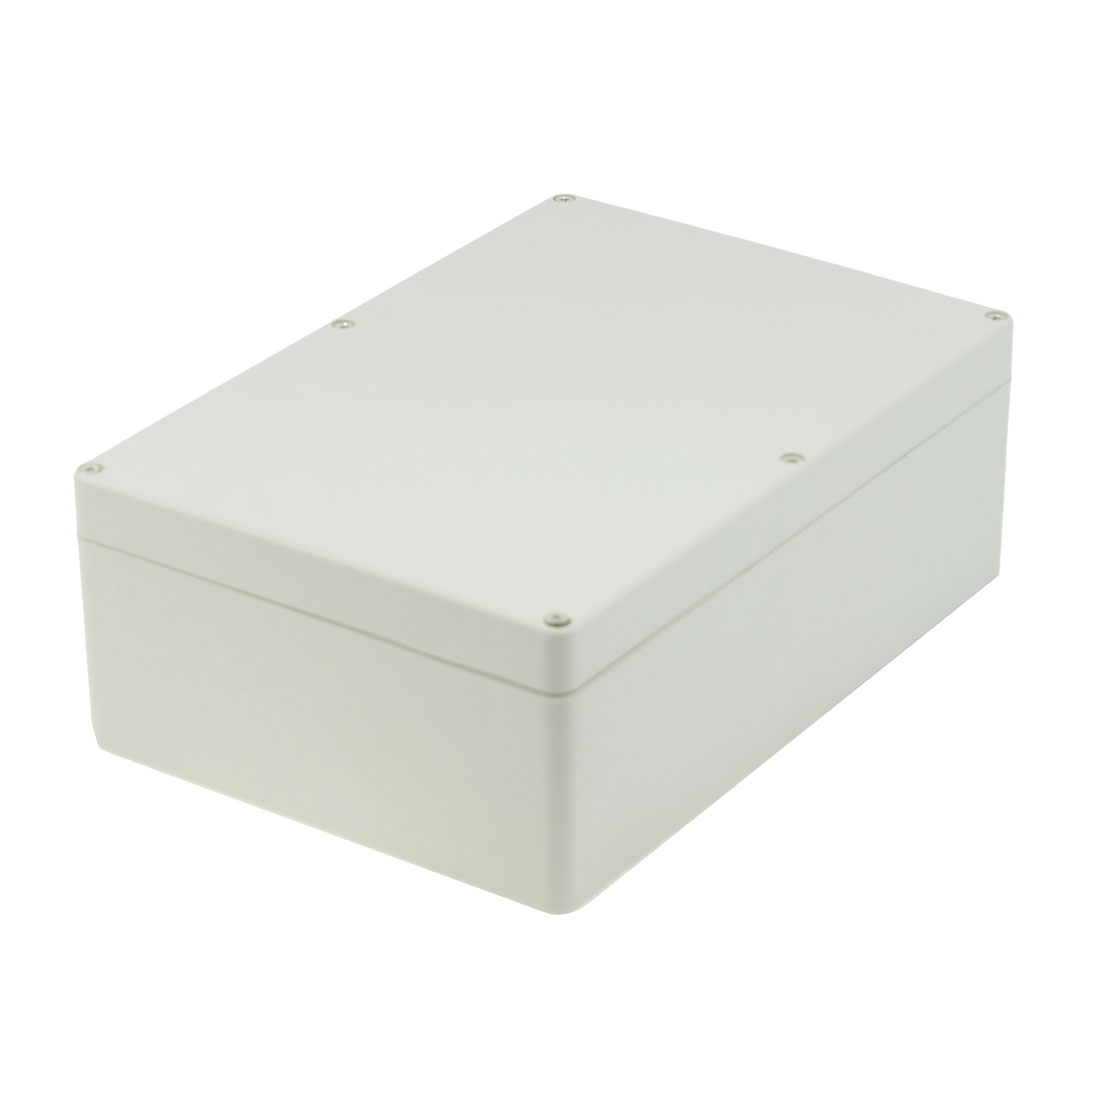 263mm x 184mm x 95mm Waterproof Plastic Enclosure Case DIY Junction Box